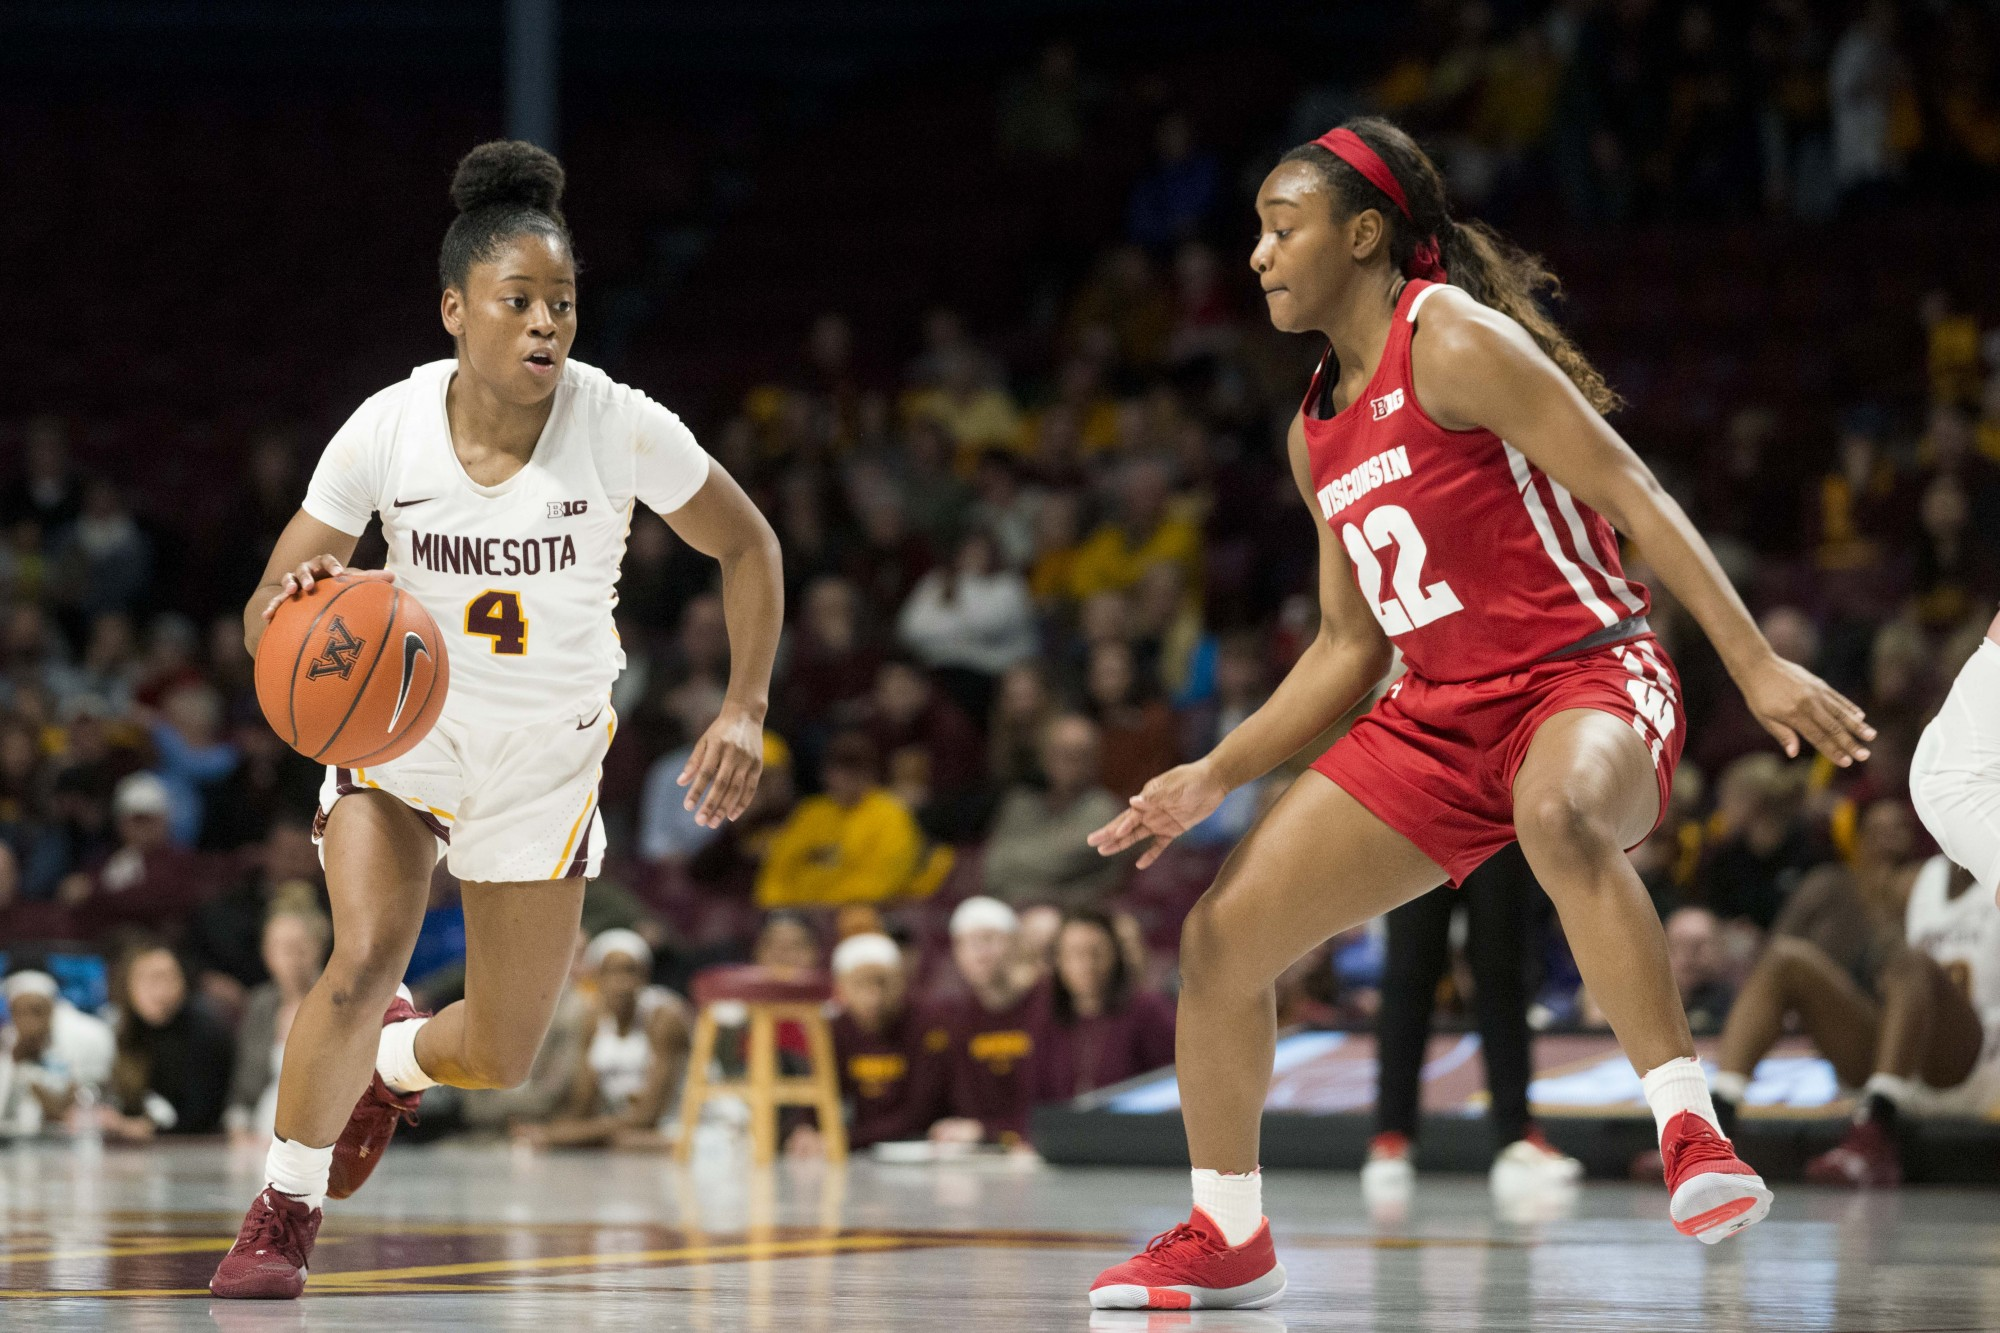 Guard Jasmine Powell brings the ball up the court at Williams Arena on Wednesday, Jan. 22. The Gophers were defeated by Wisconsin 72-62.